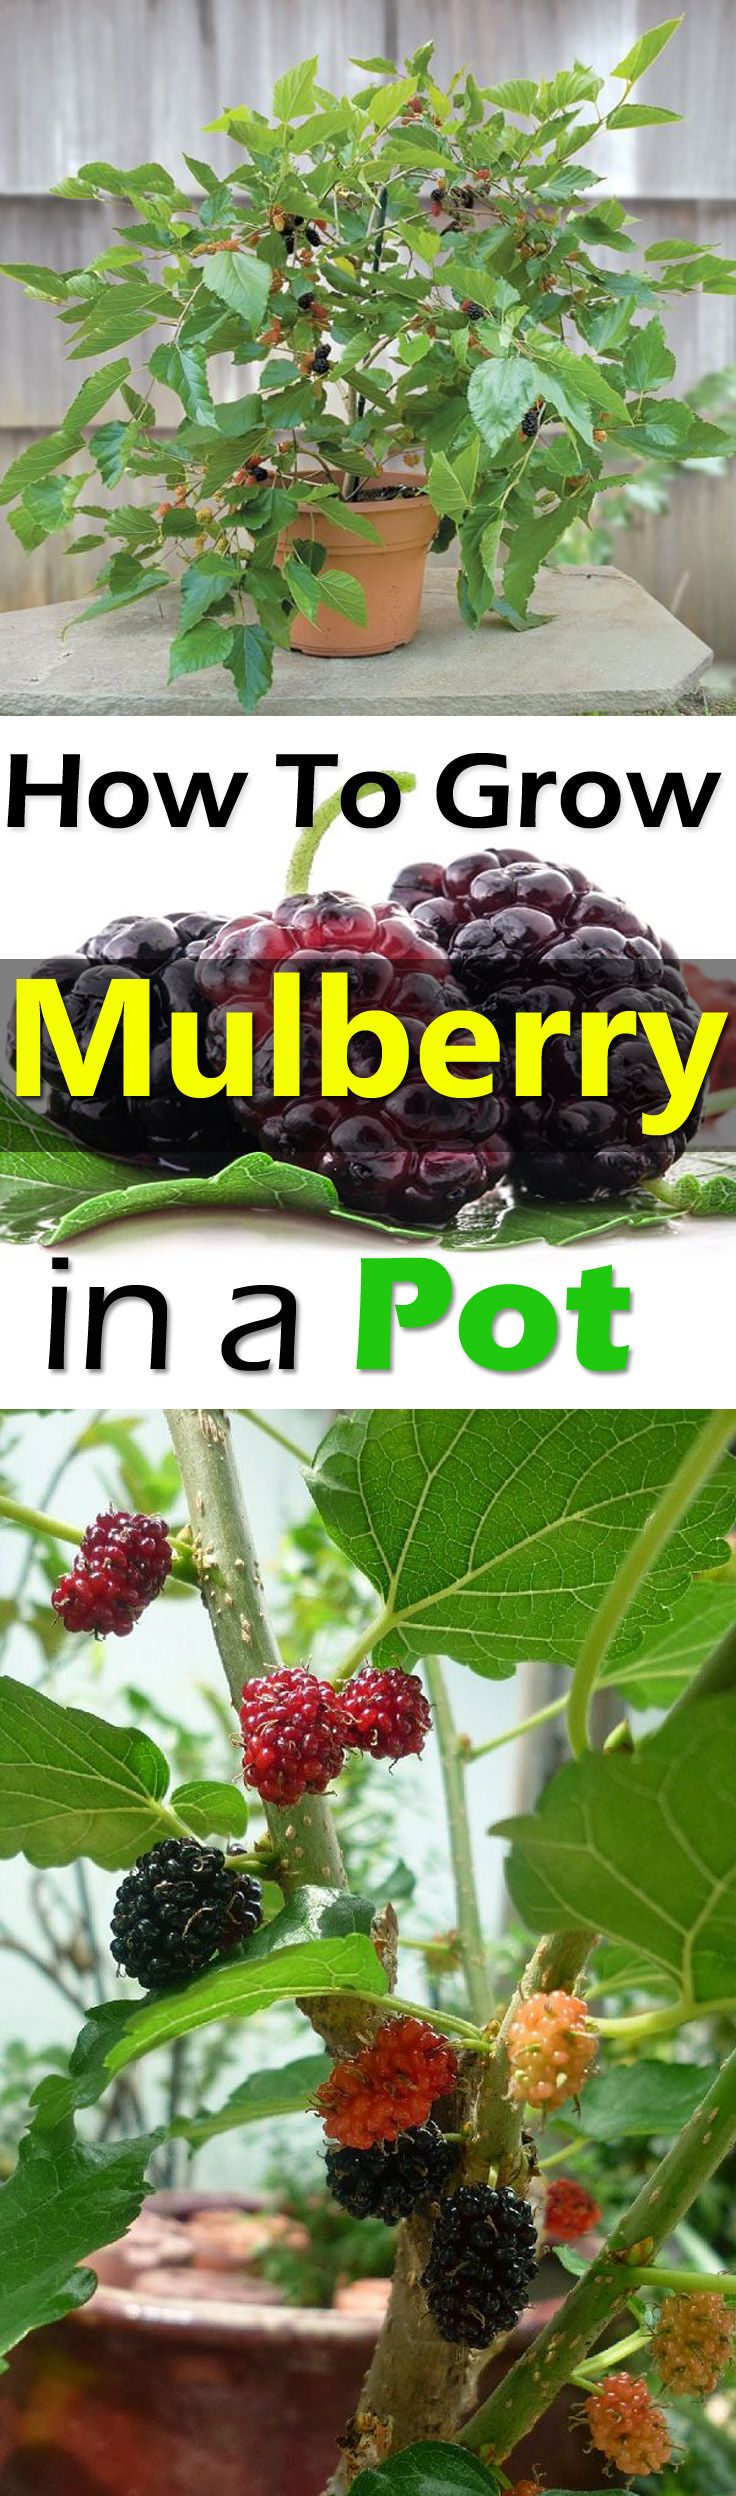 Mulberry fruits are rarely available in the market due to their short shelf life but growing them in containers can allow you to taste them FRESH. Check out!